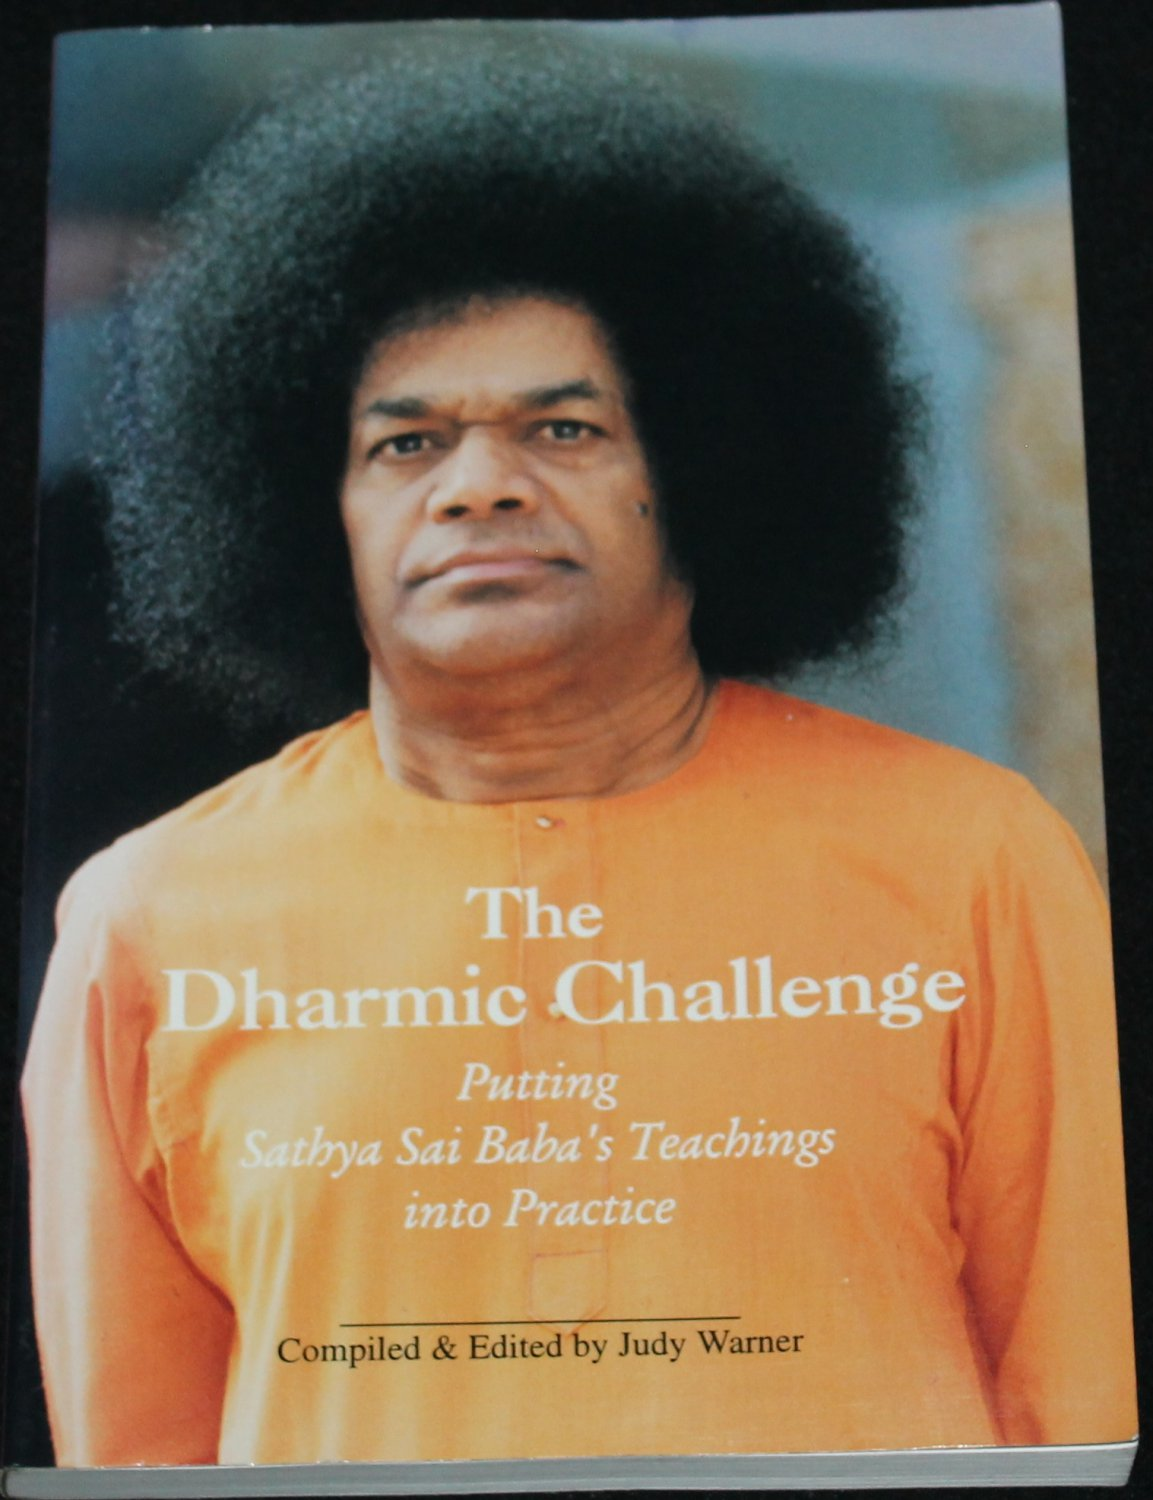 The Dharmic Challenge Putting Sathya Baba's Teachings into Practice Indian guru spiritual book